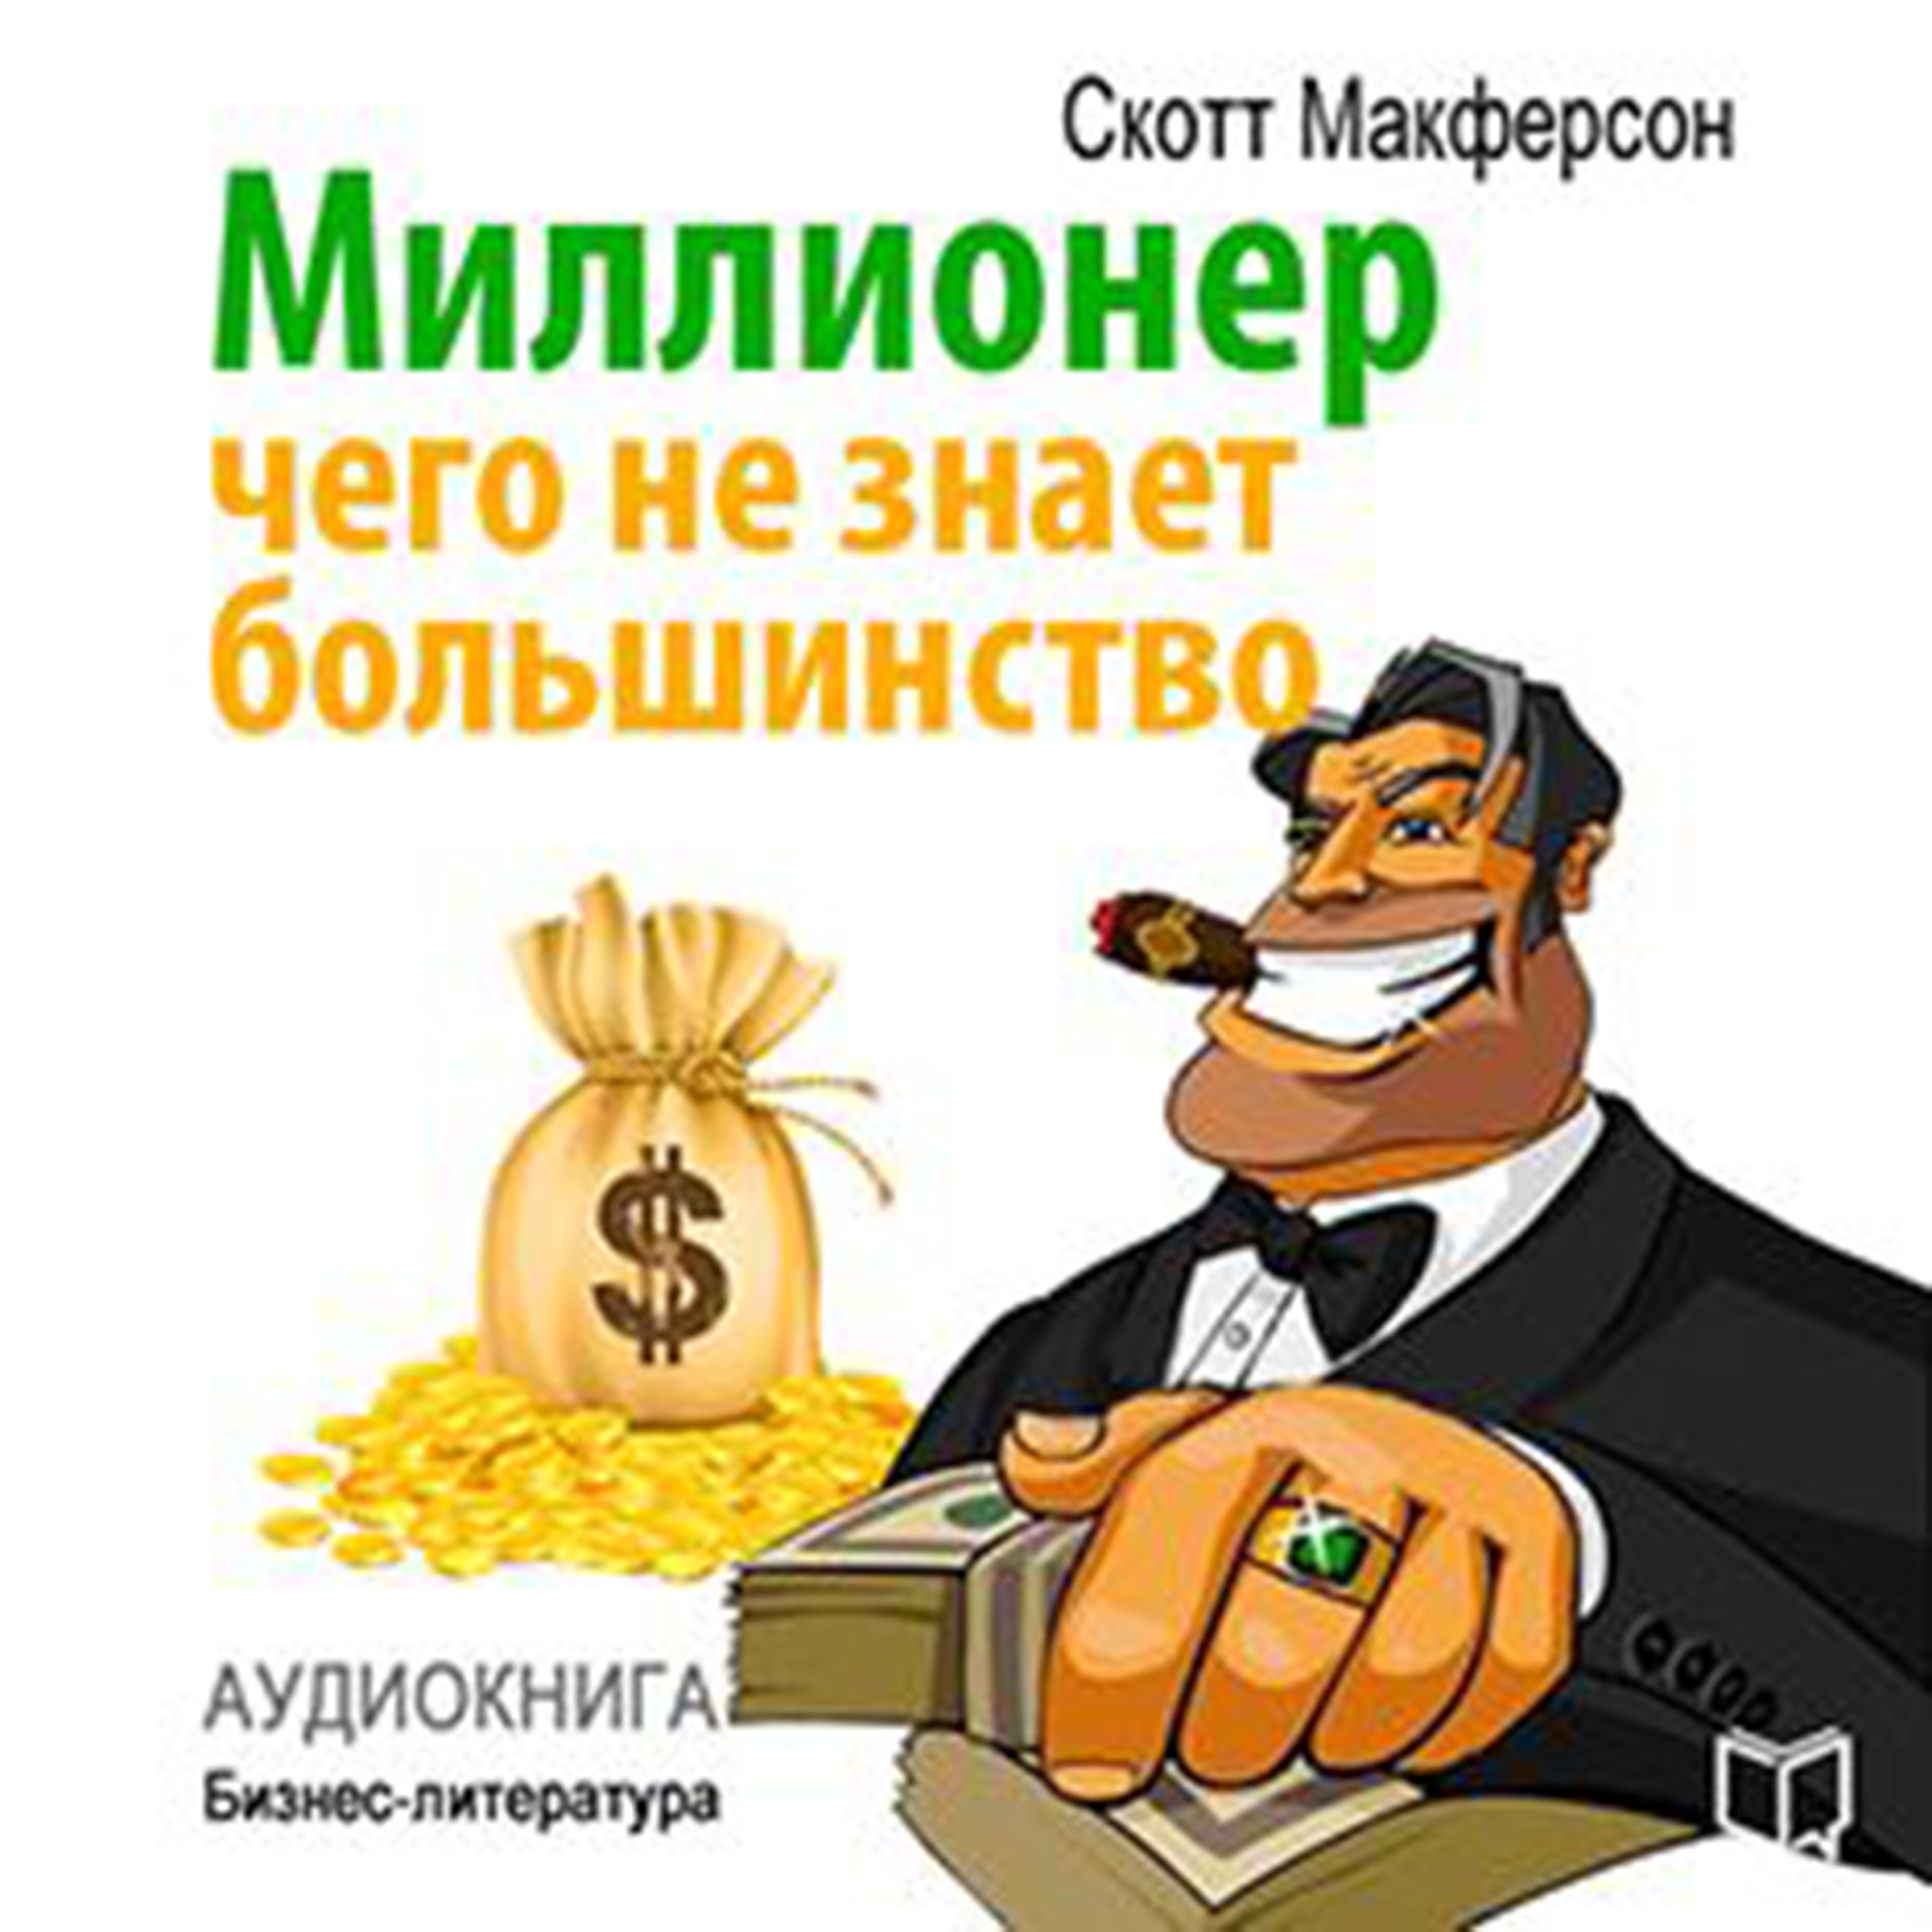 Printable Who Are Millionaires? All About Secrets of Richest People [Russian Edition] Audiobook Cover Art